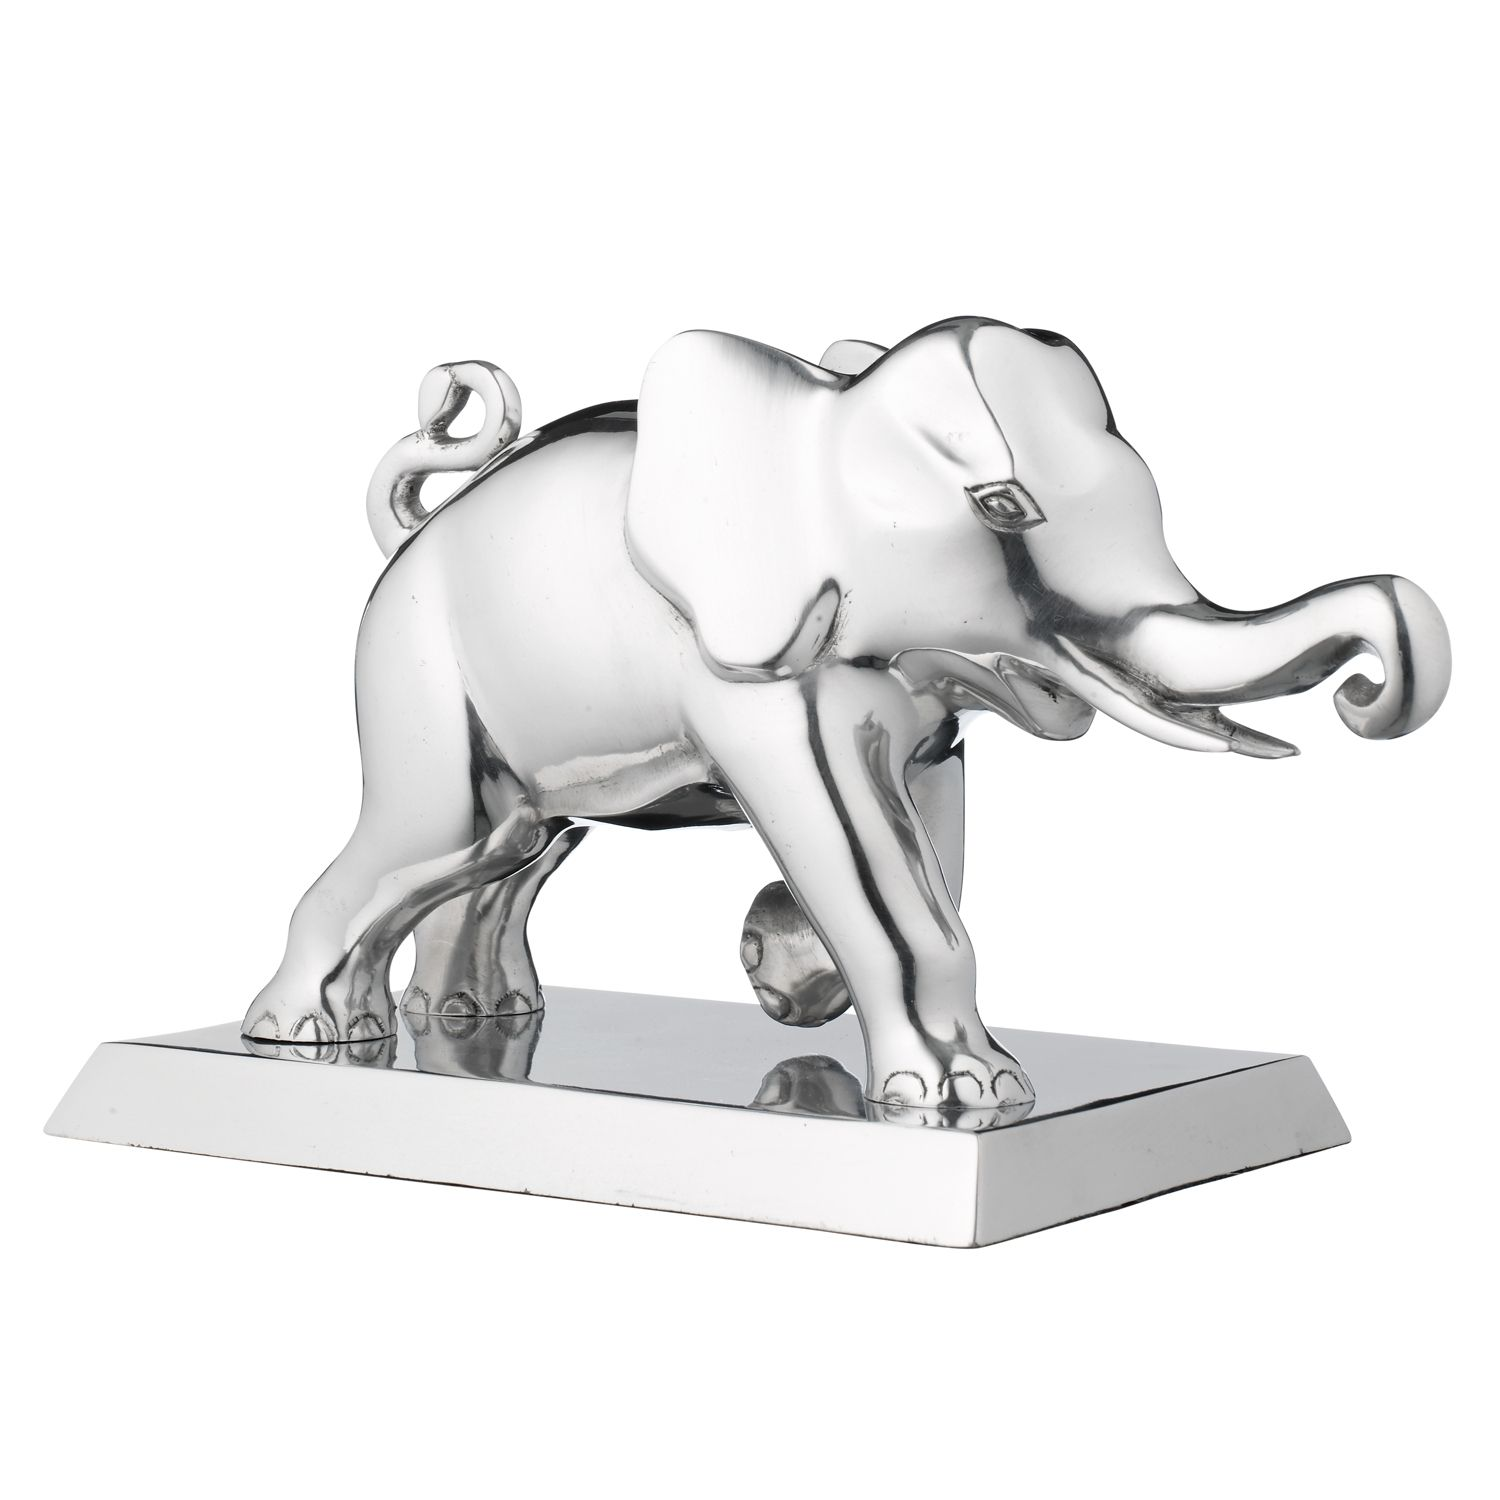 Elephant is the symbol of gallery symbol and sign ideas the elephant is a symbol of good luck trunk up obstacles the elephant is a symbol biocorpaavc